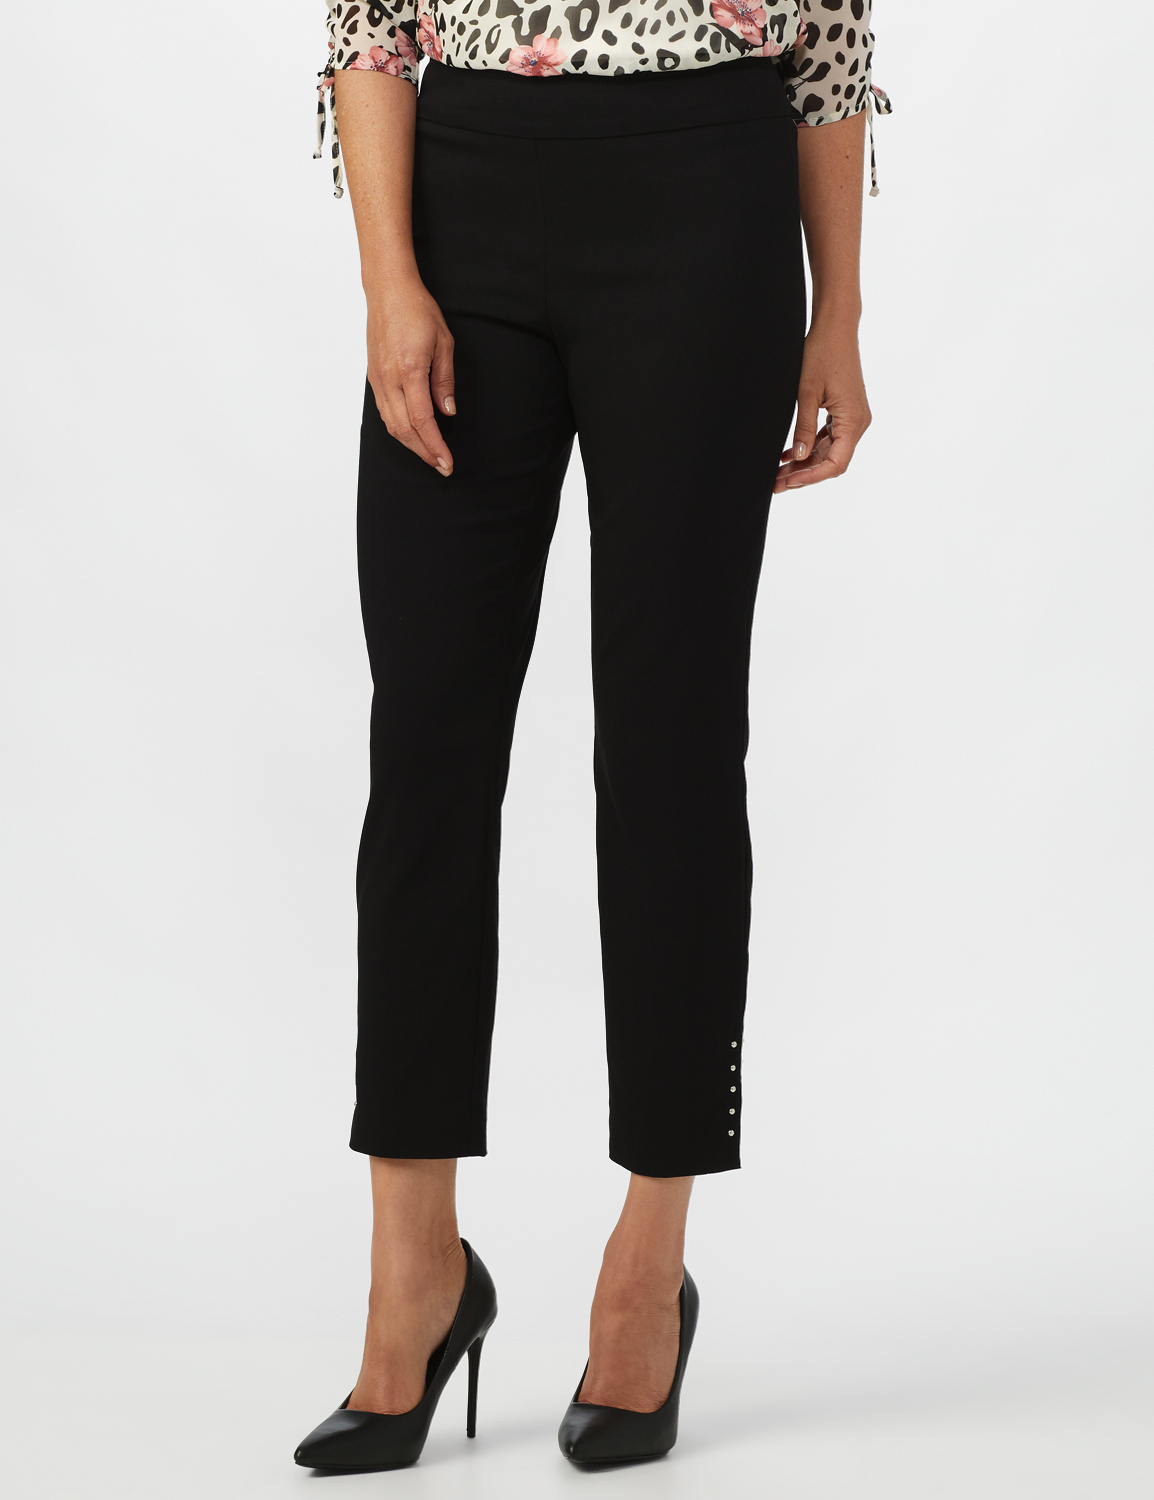 Roz & Ali Solid Superstretch Tummy Panel Pull On Ankle Pants With Rivet Trim Bottom - Misses -Black - Front